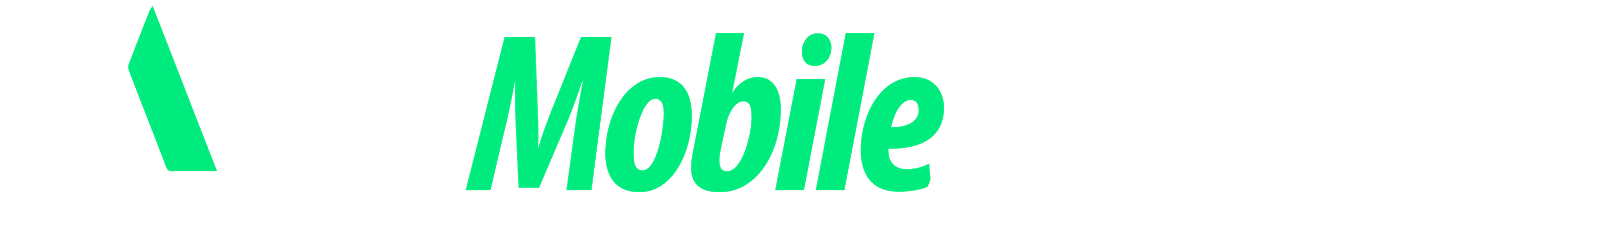 TheMobileAuthority - Mobile Phone Reviews, News, Specifications, Gadgets, Games, Apps and More.